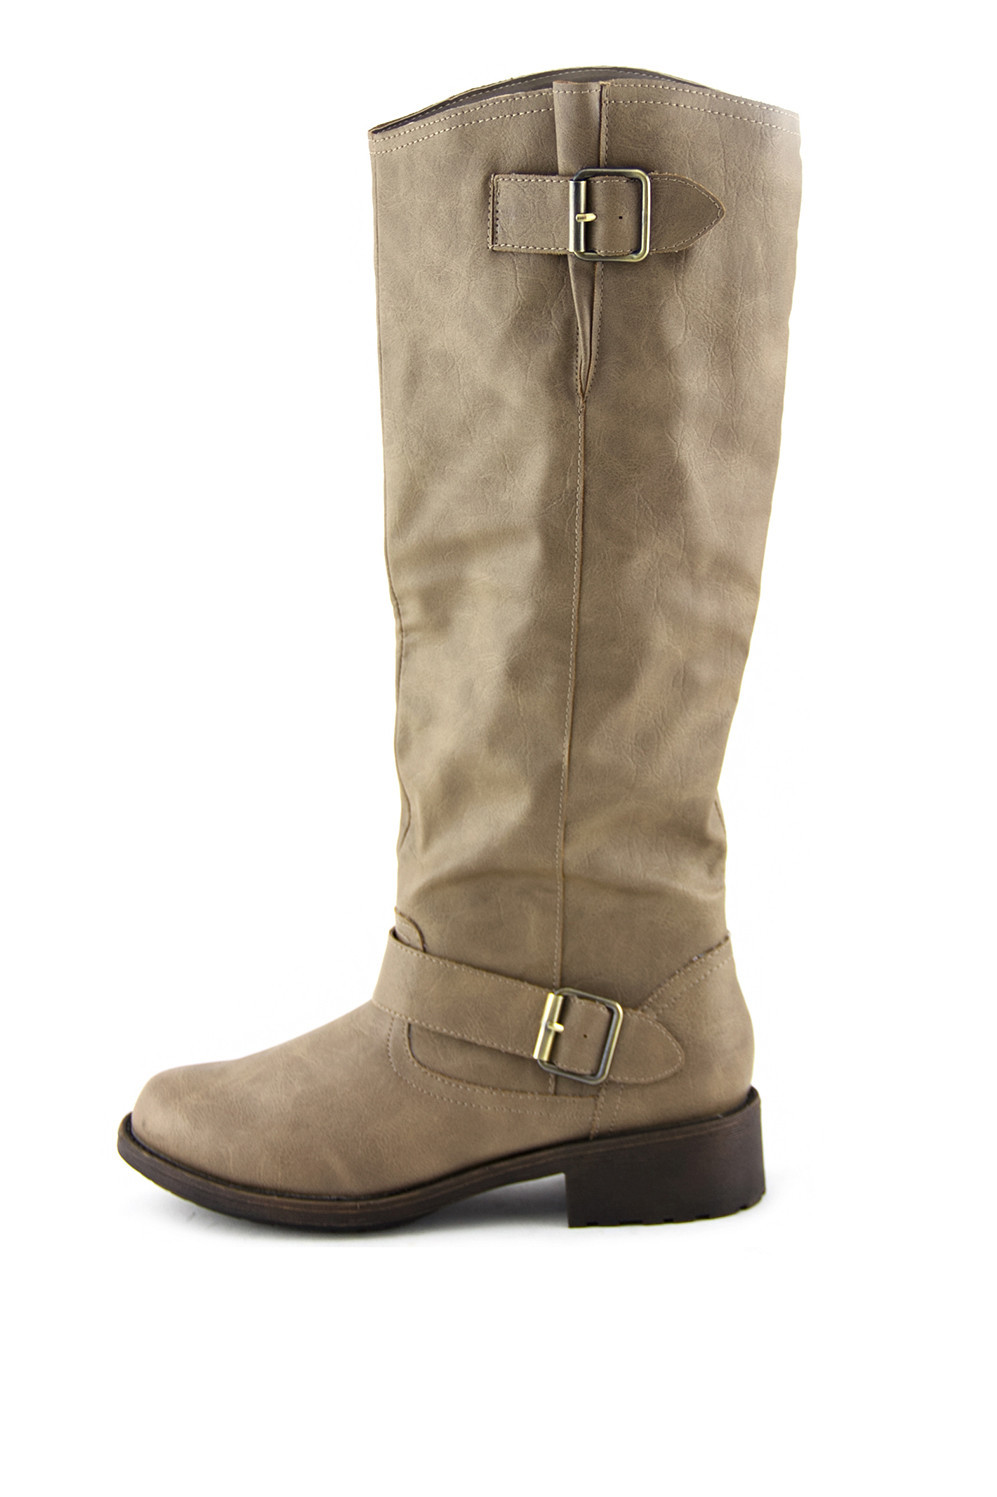 RIDING KNEE BOOT - Taupe | Haute & Rebellious